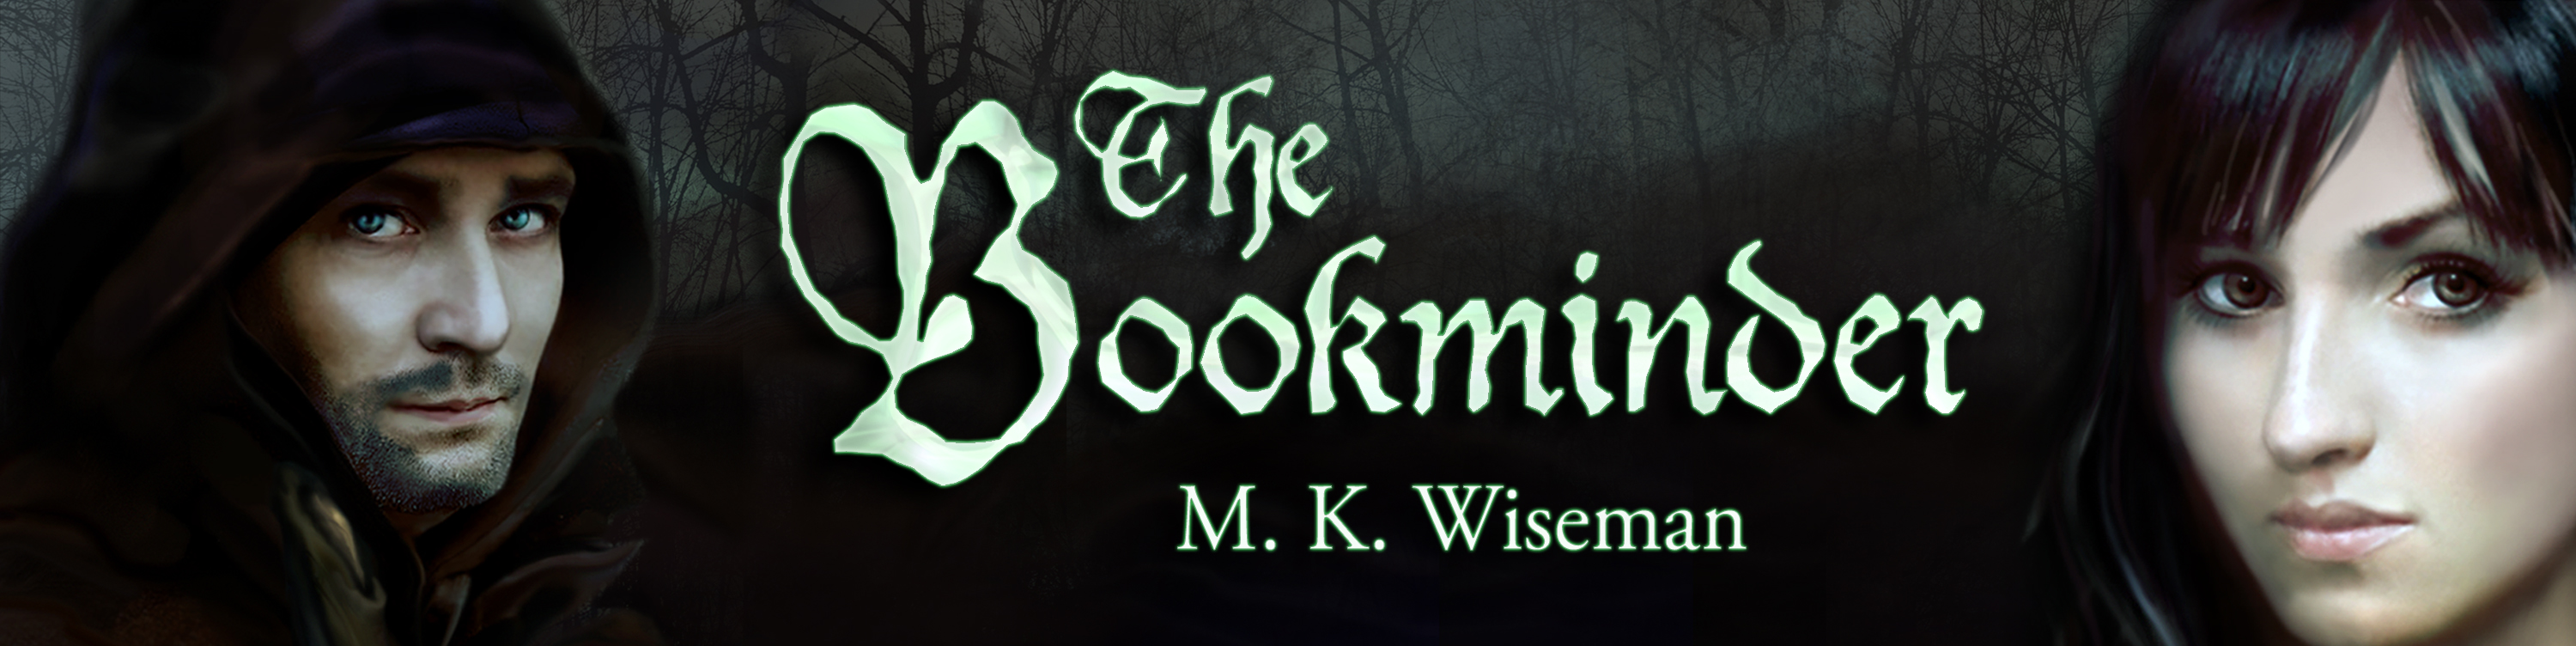 The Bookminder by M. K. Wiseman